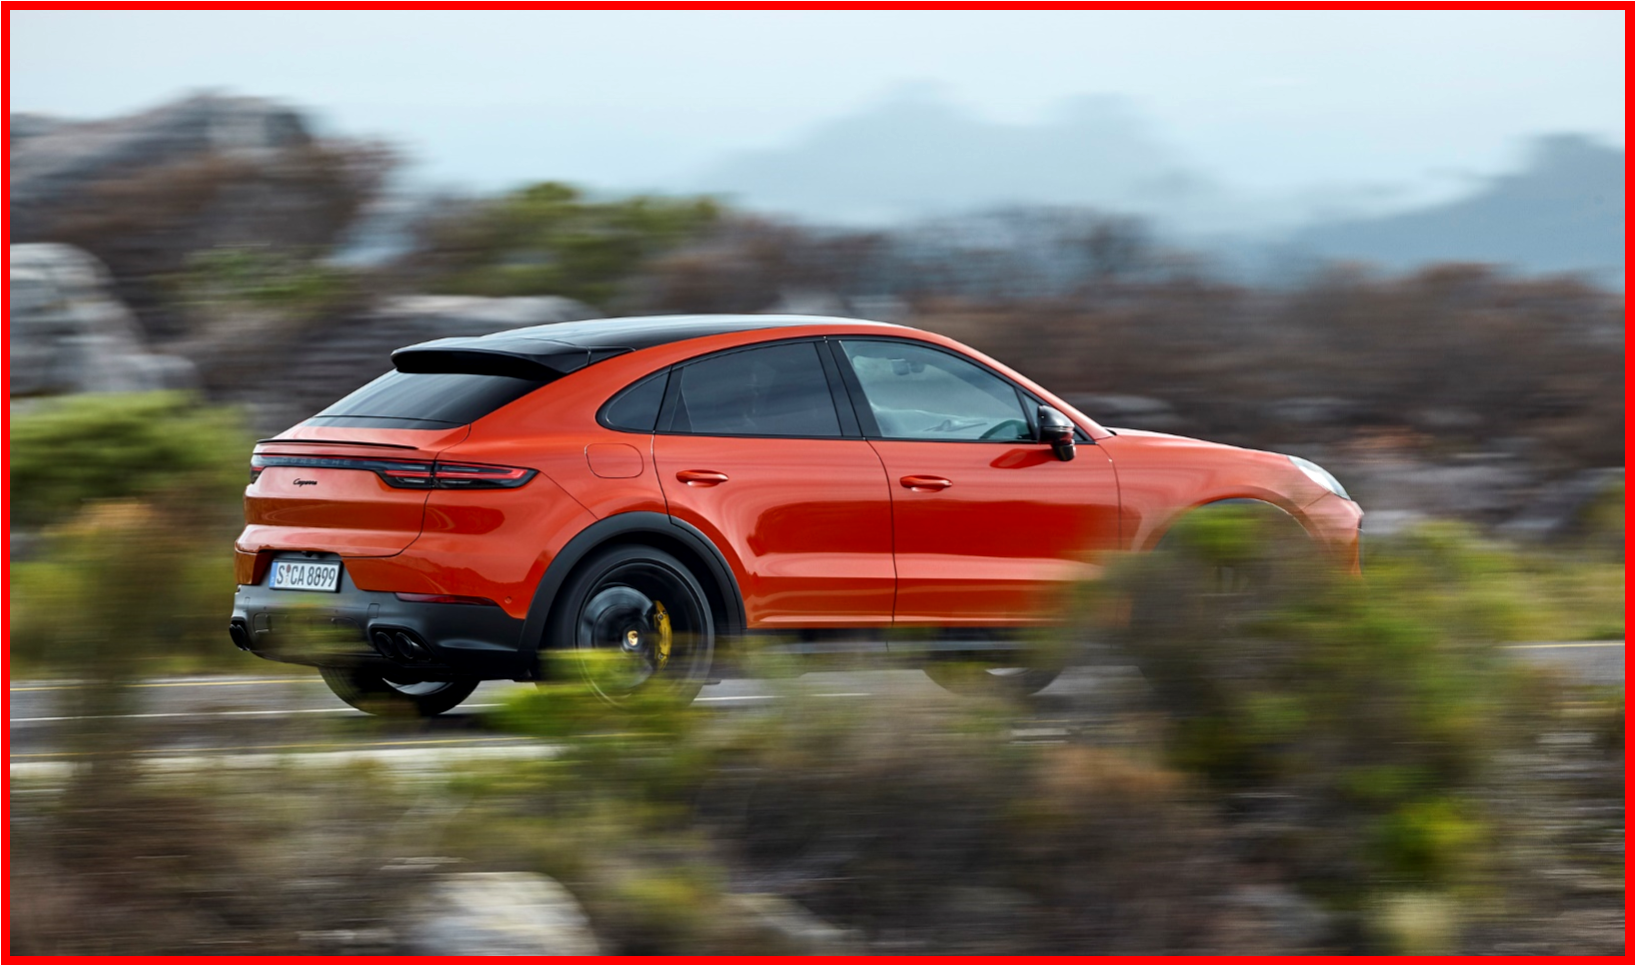 AutoInformed.com on Porsche 6 Month 2019 Financial Results